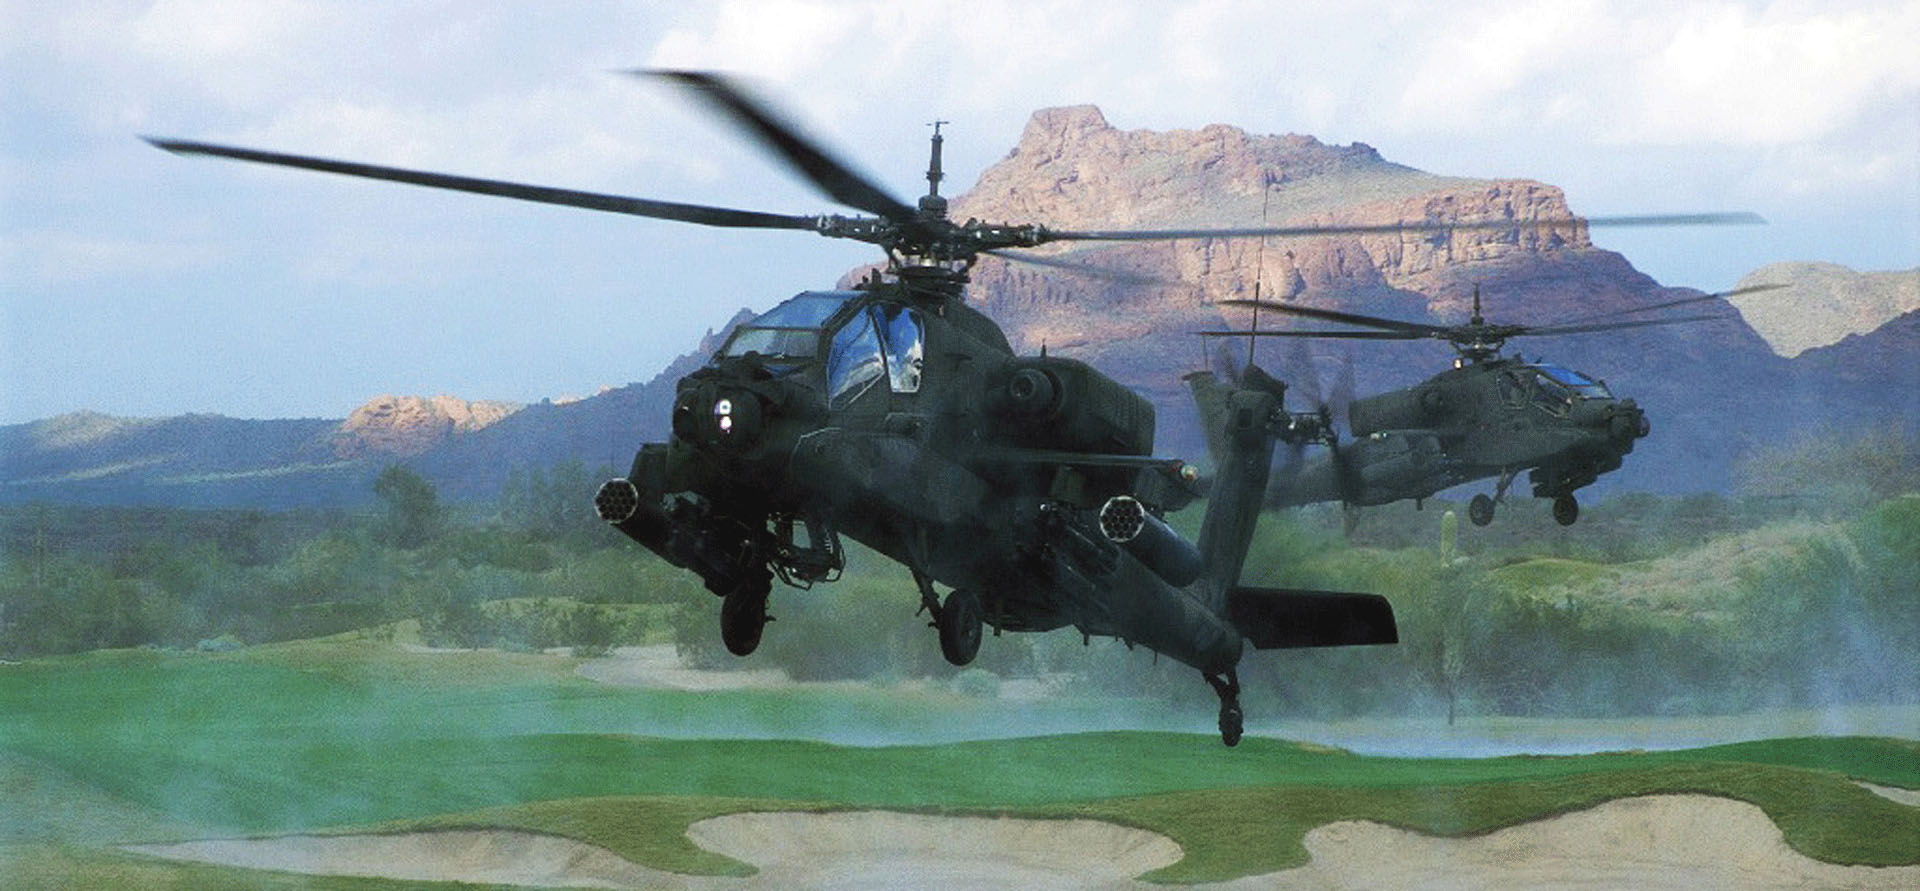 Boeing Apache helicopter